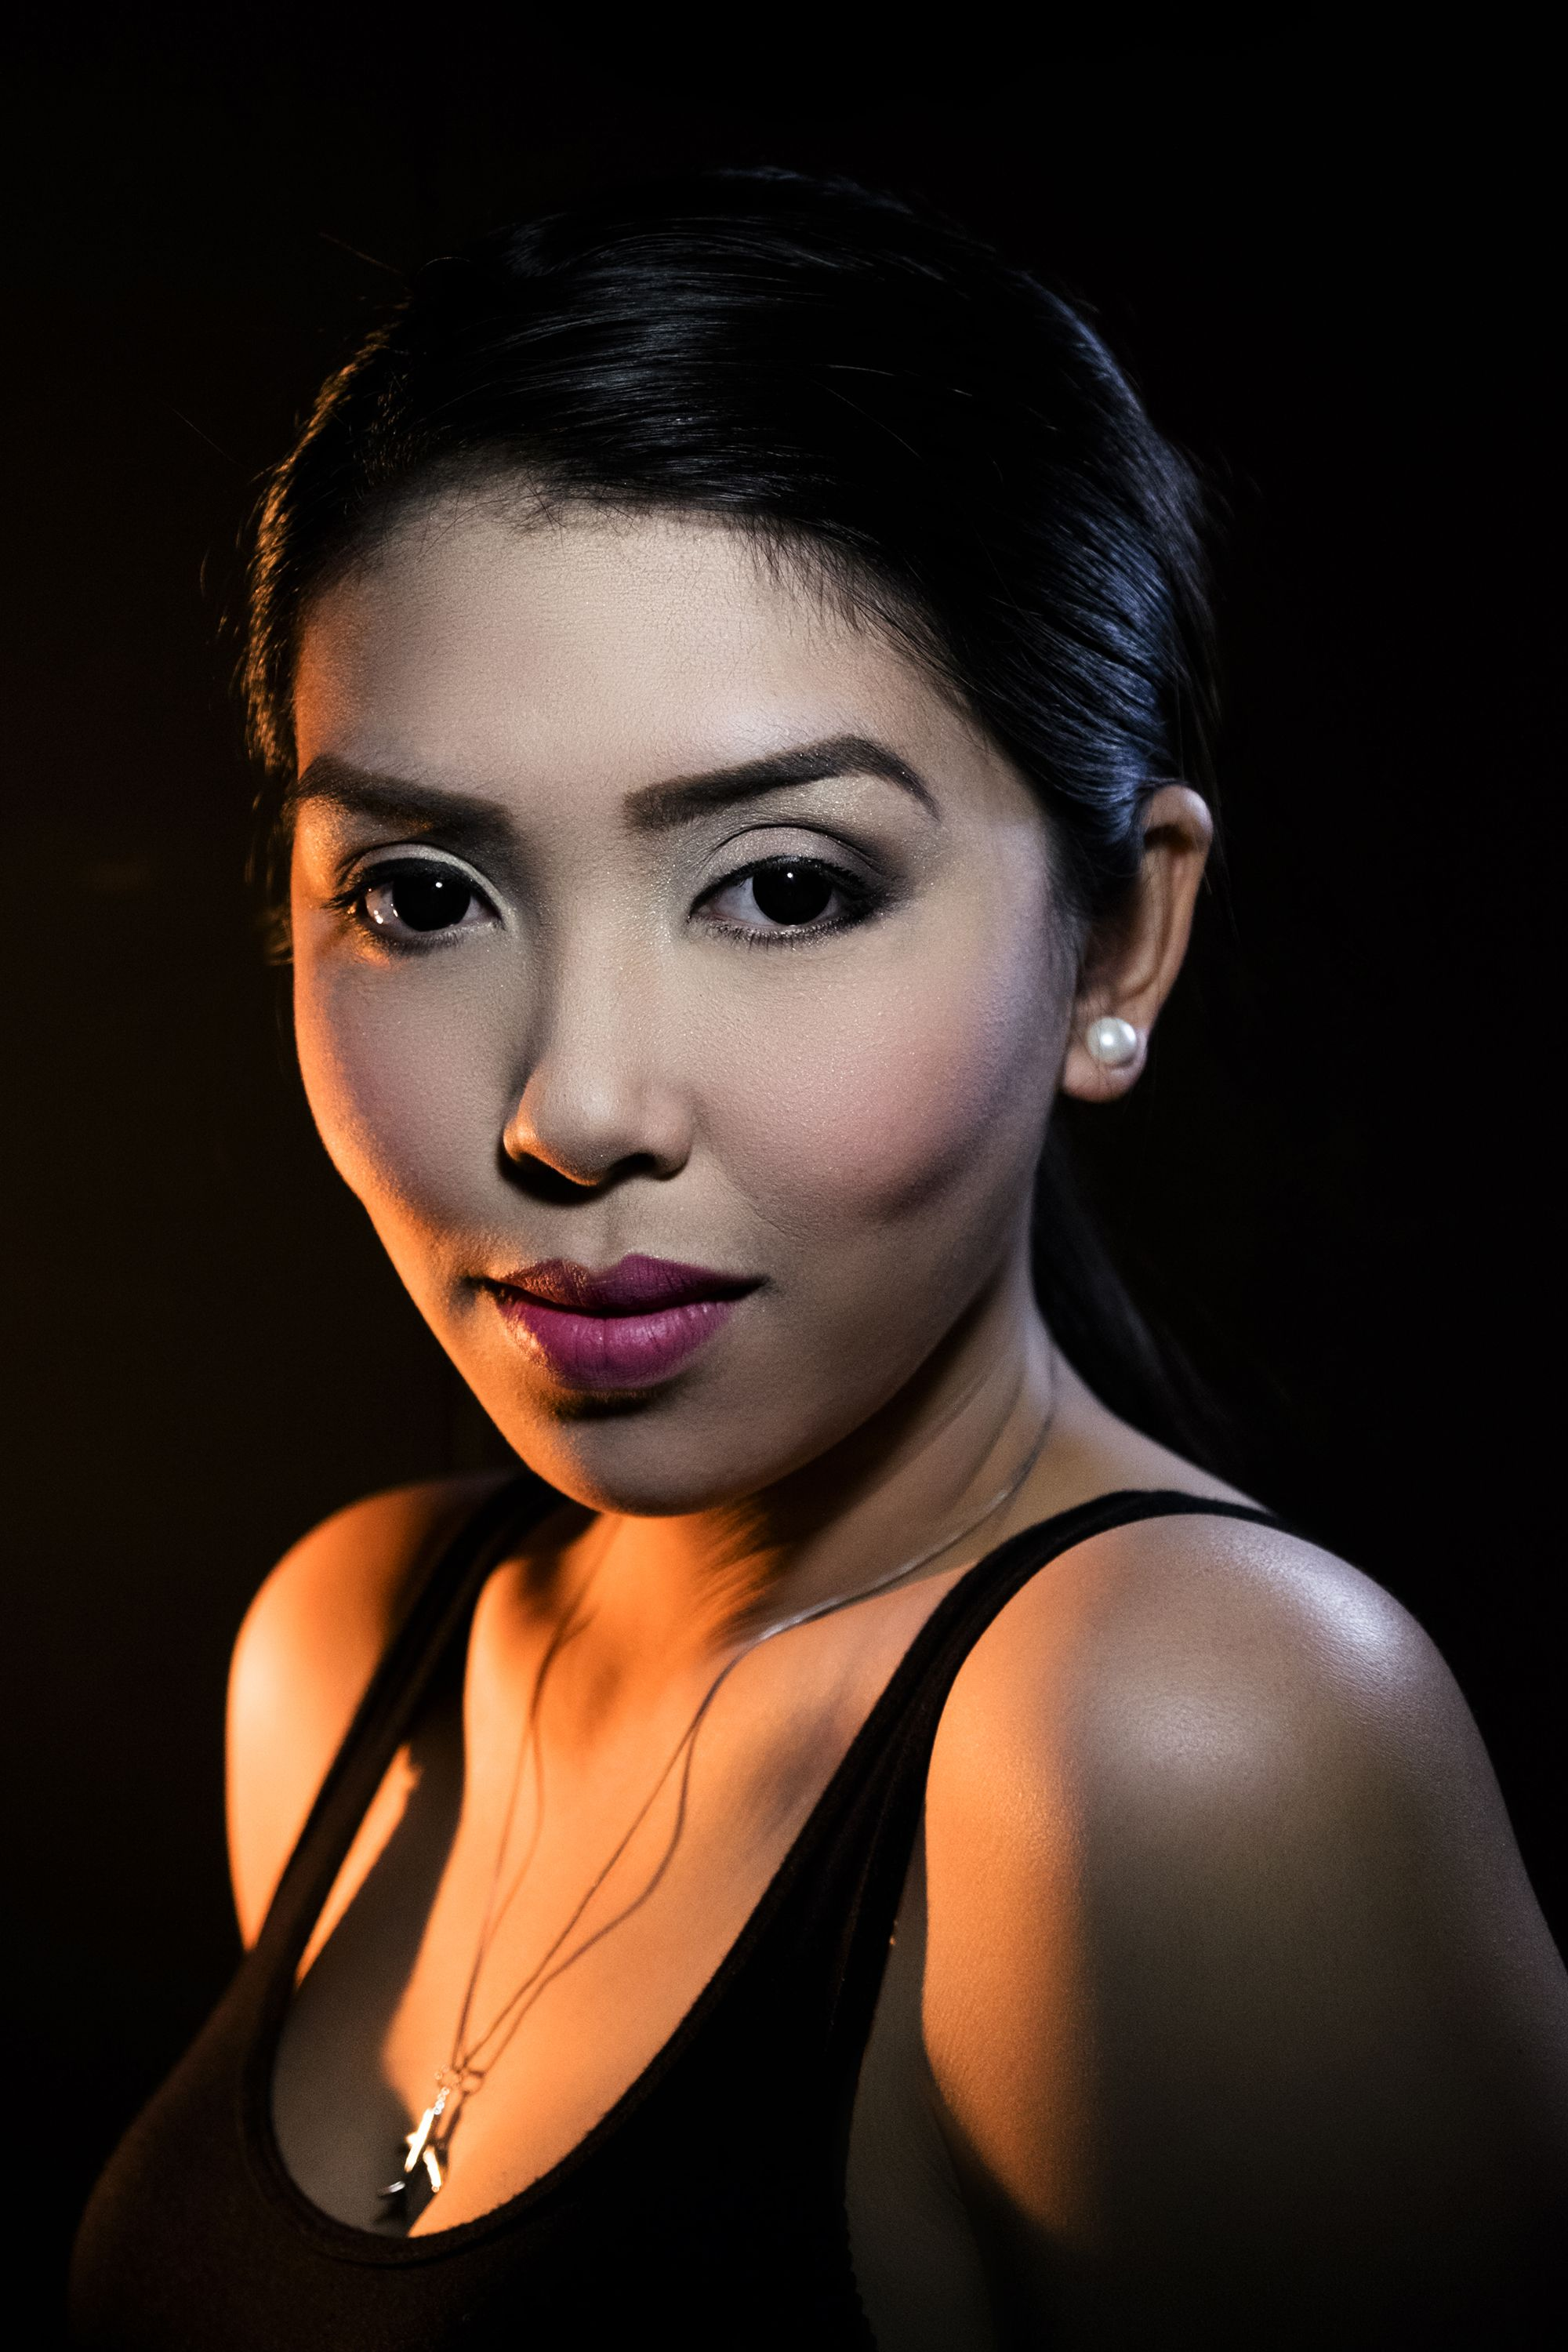 How To: Dramatic Portrait Lighting Using Nothing But Lamps ...